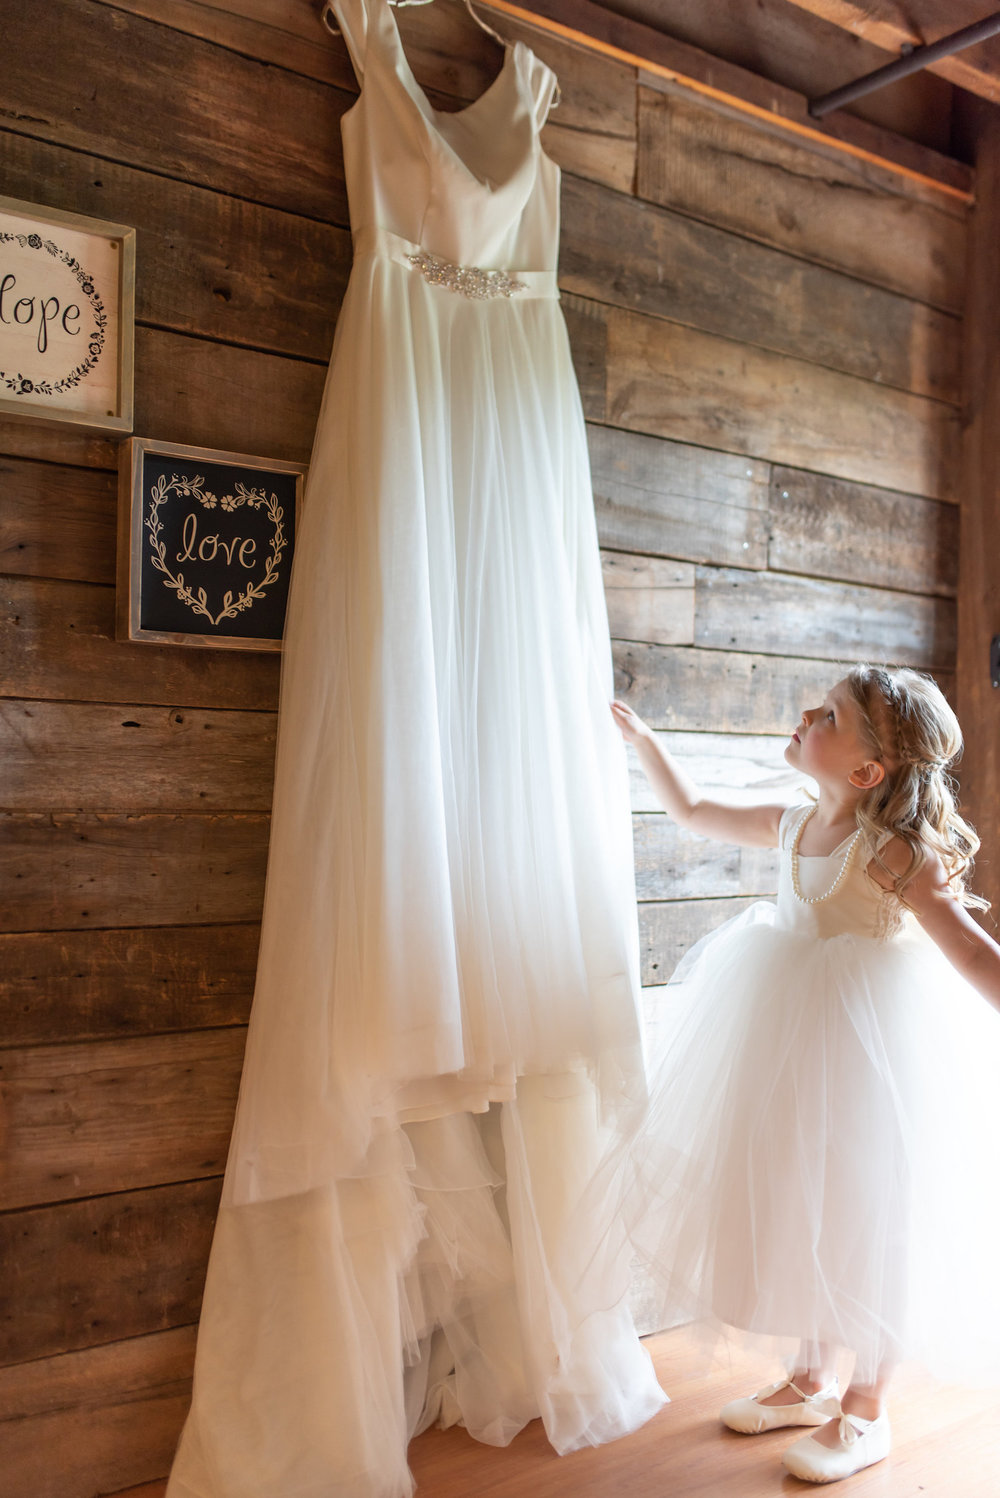 Sarah and Mark | Hope Glen Farm | Kelly Birch Photo | Sixpence Events & Planning wedding planning in Minnesota | daughter looking at moms dress